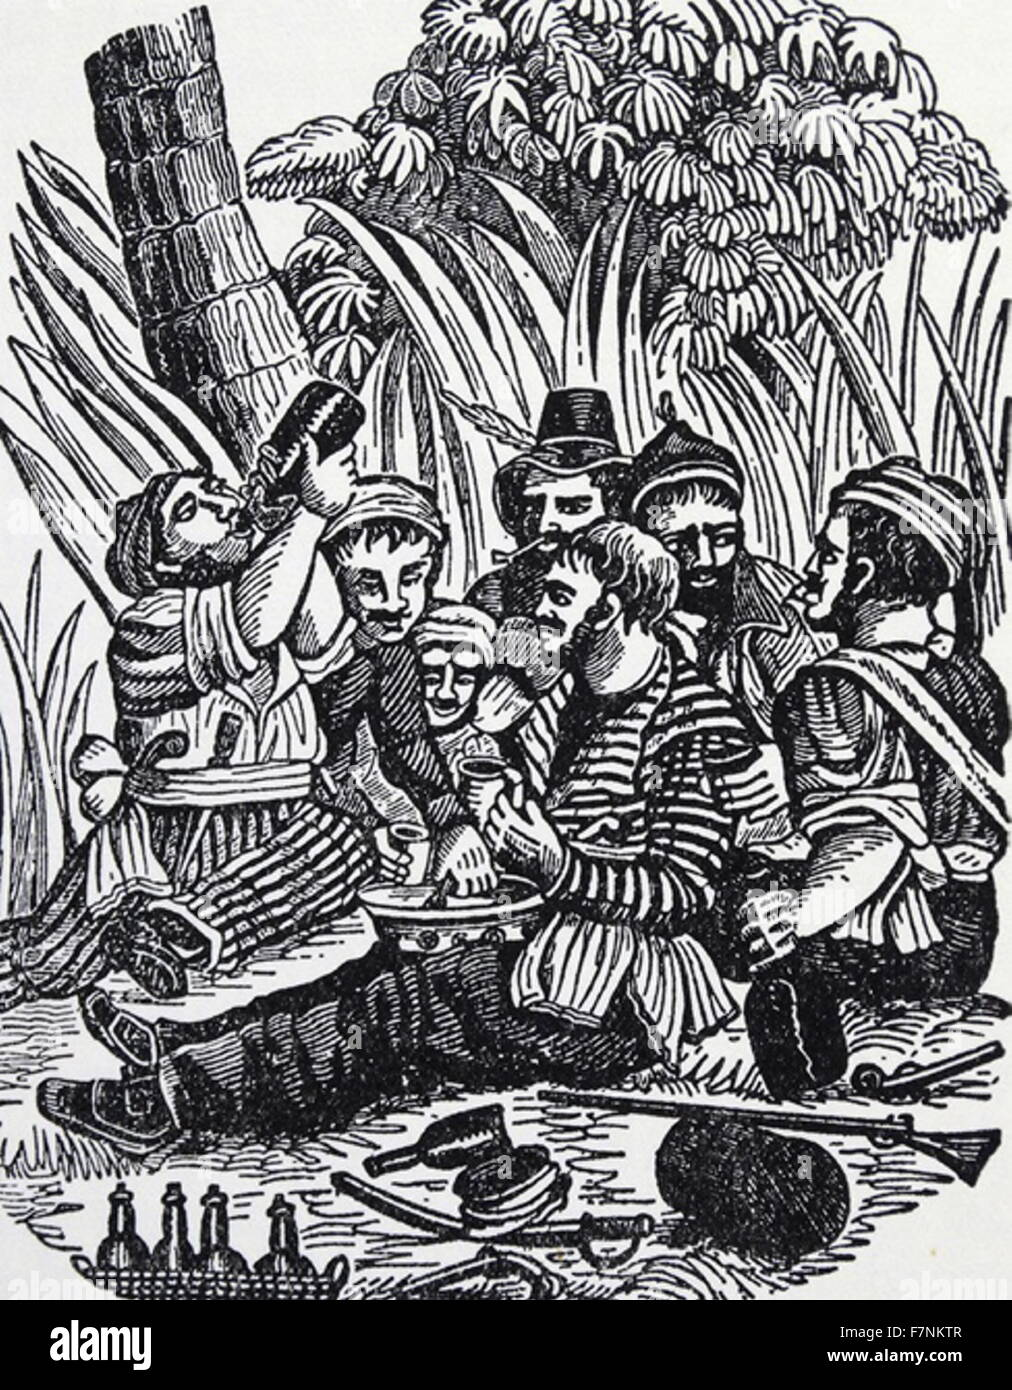 crew of Captain Bartholomew Roberts, known as 'Black Bart,' after a raid on the Guinea Coast, Africa in - Stock Image